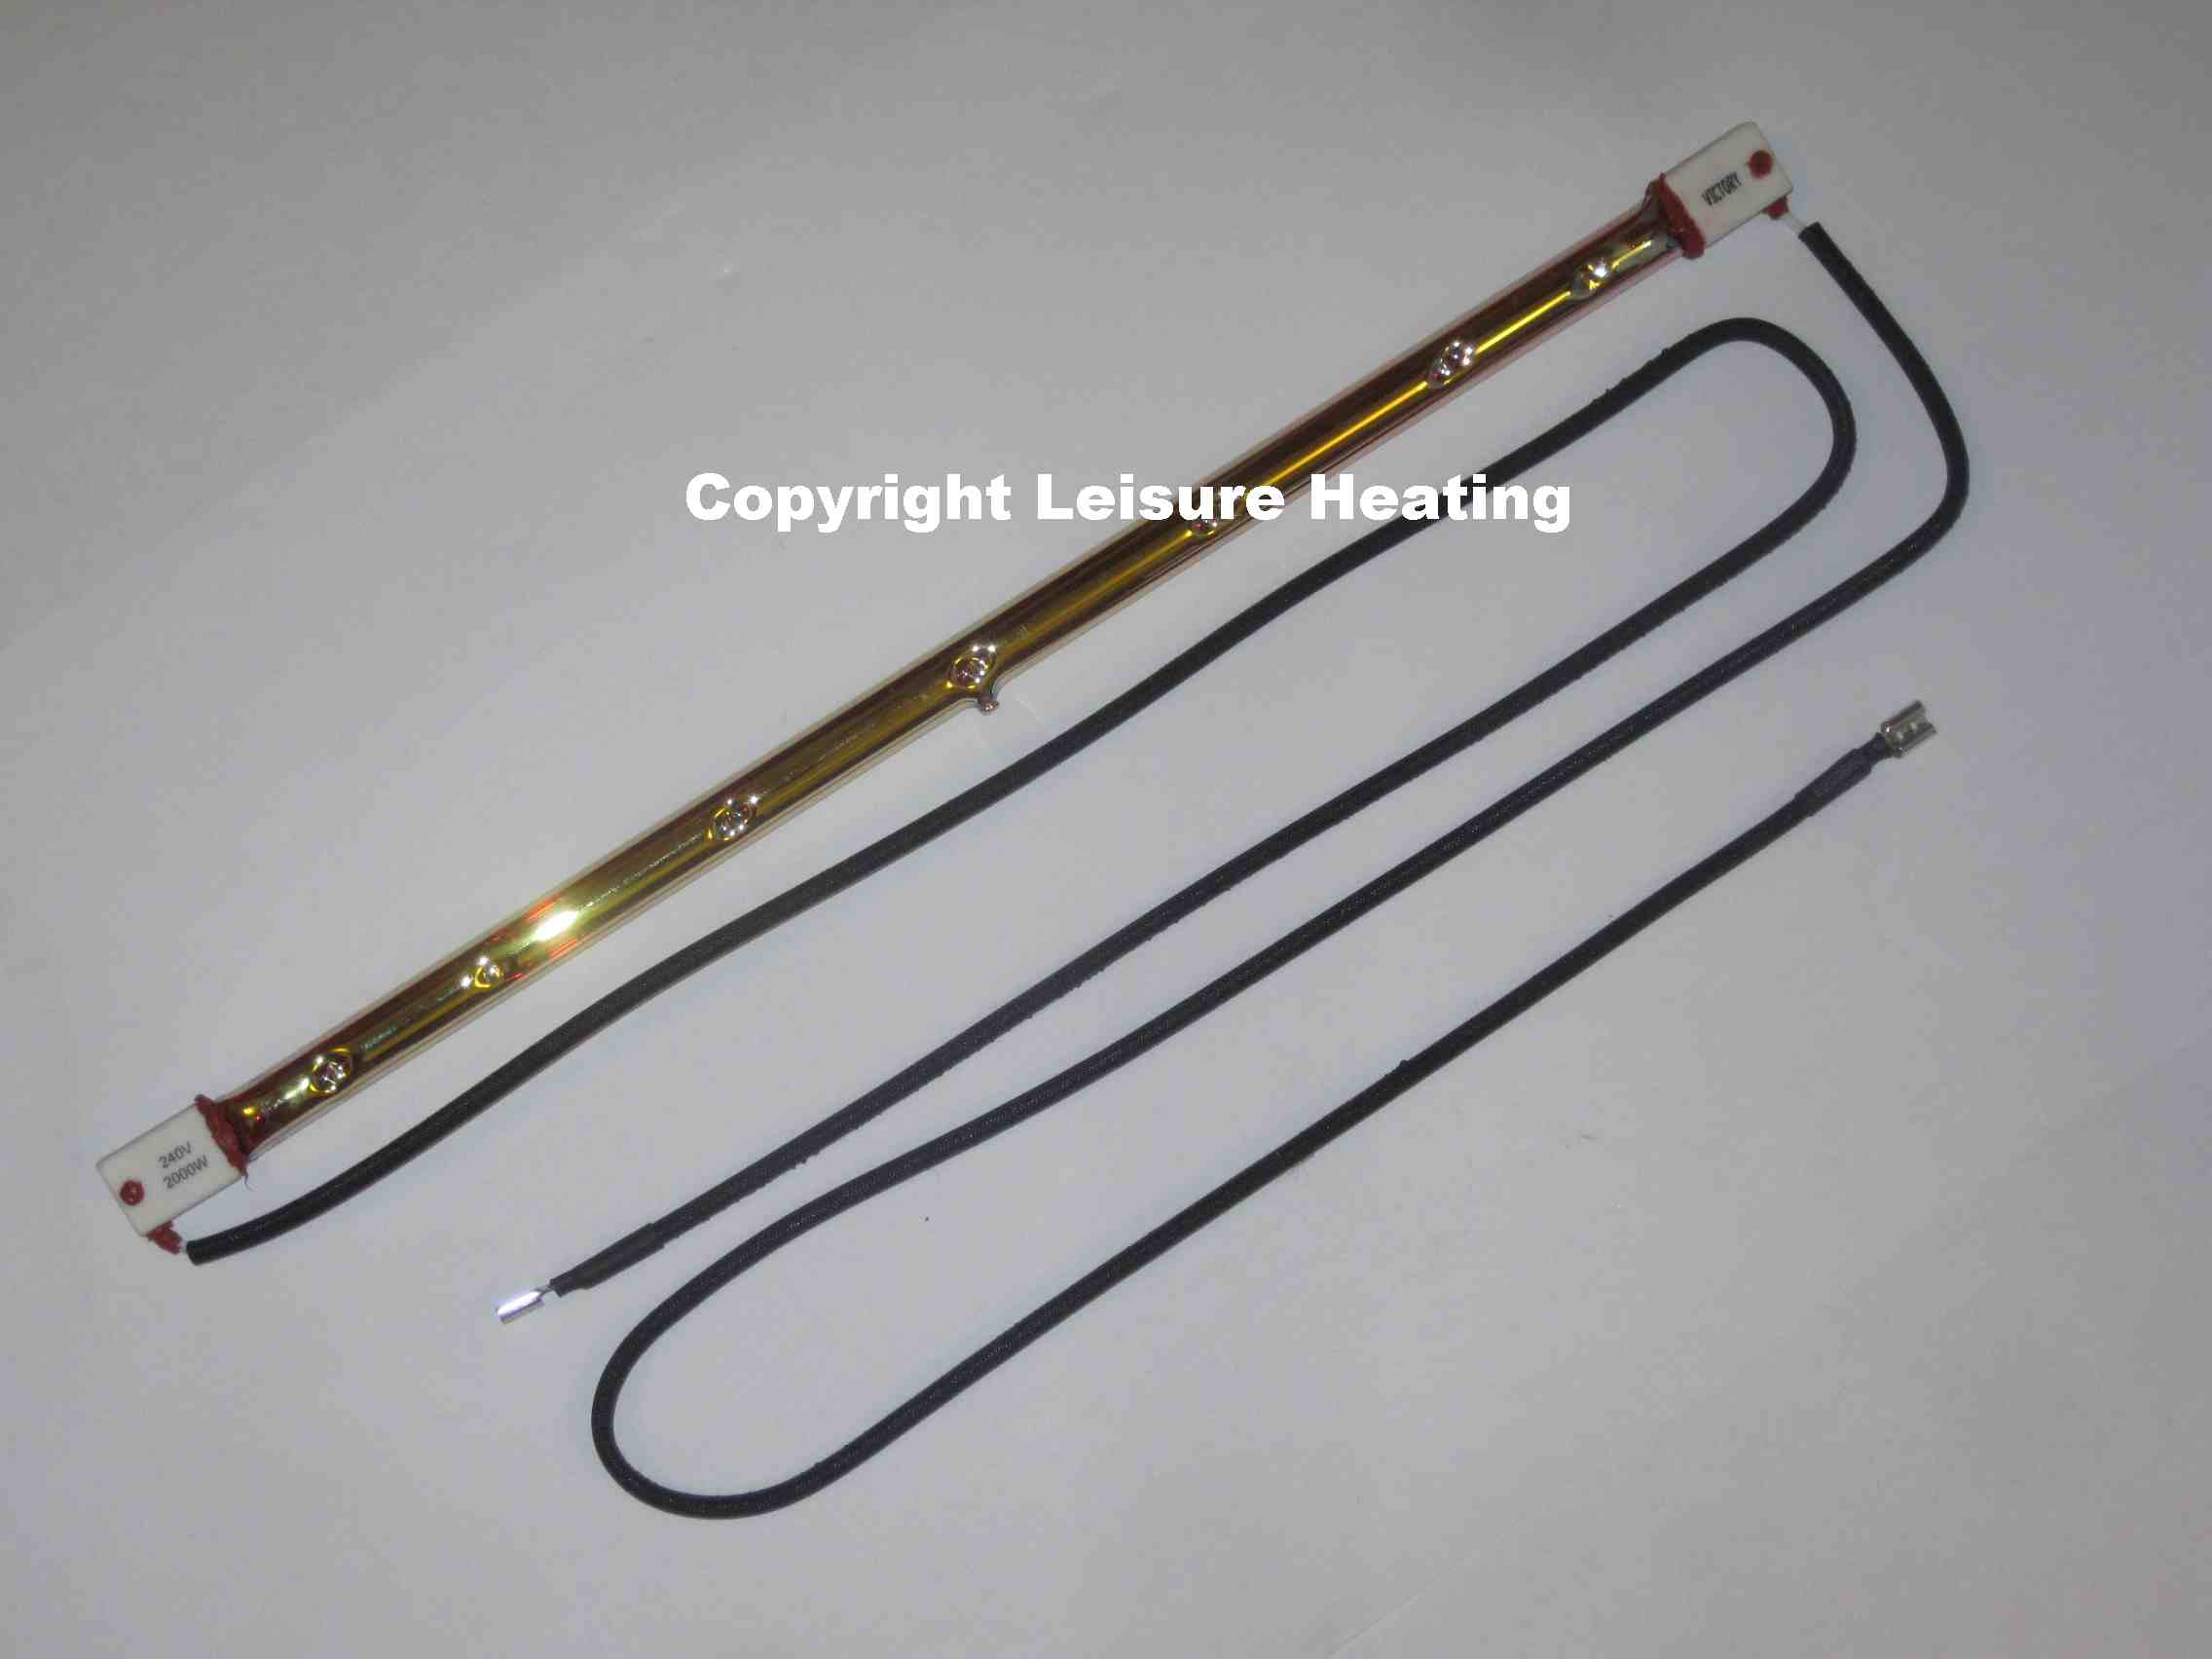 2kW Replacement Emitter for Algarve 2kW Patio Heater